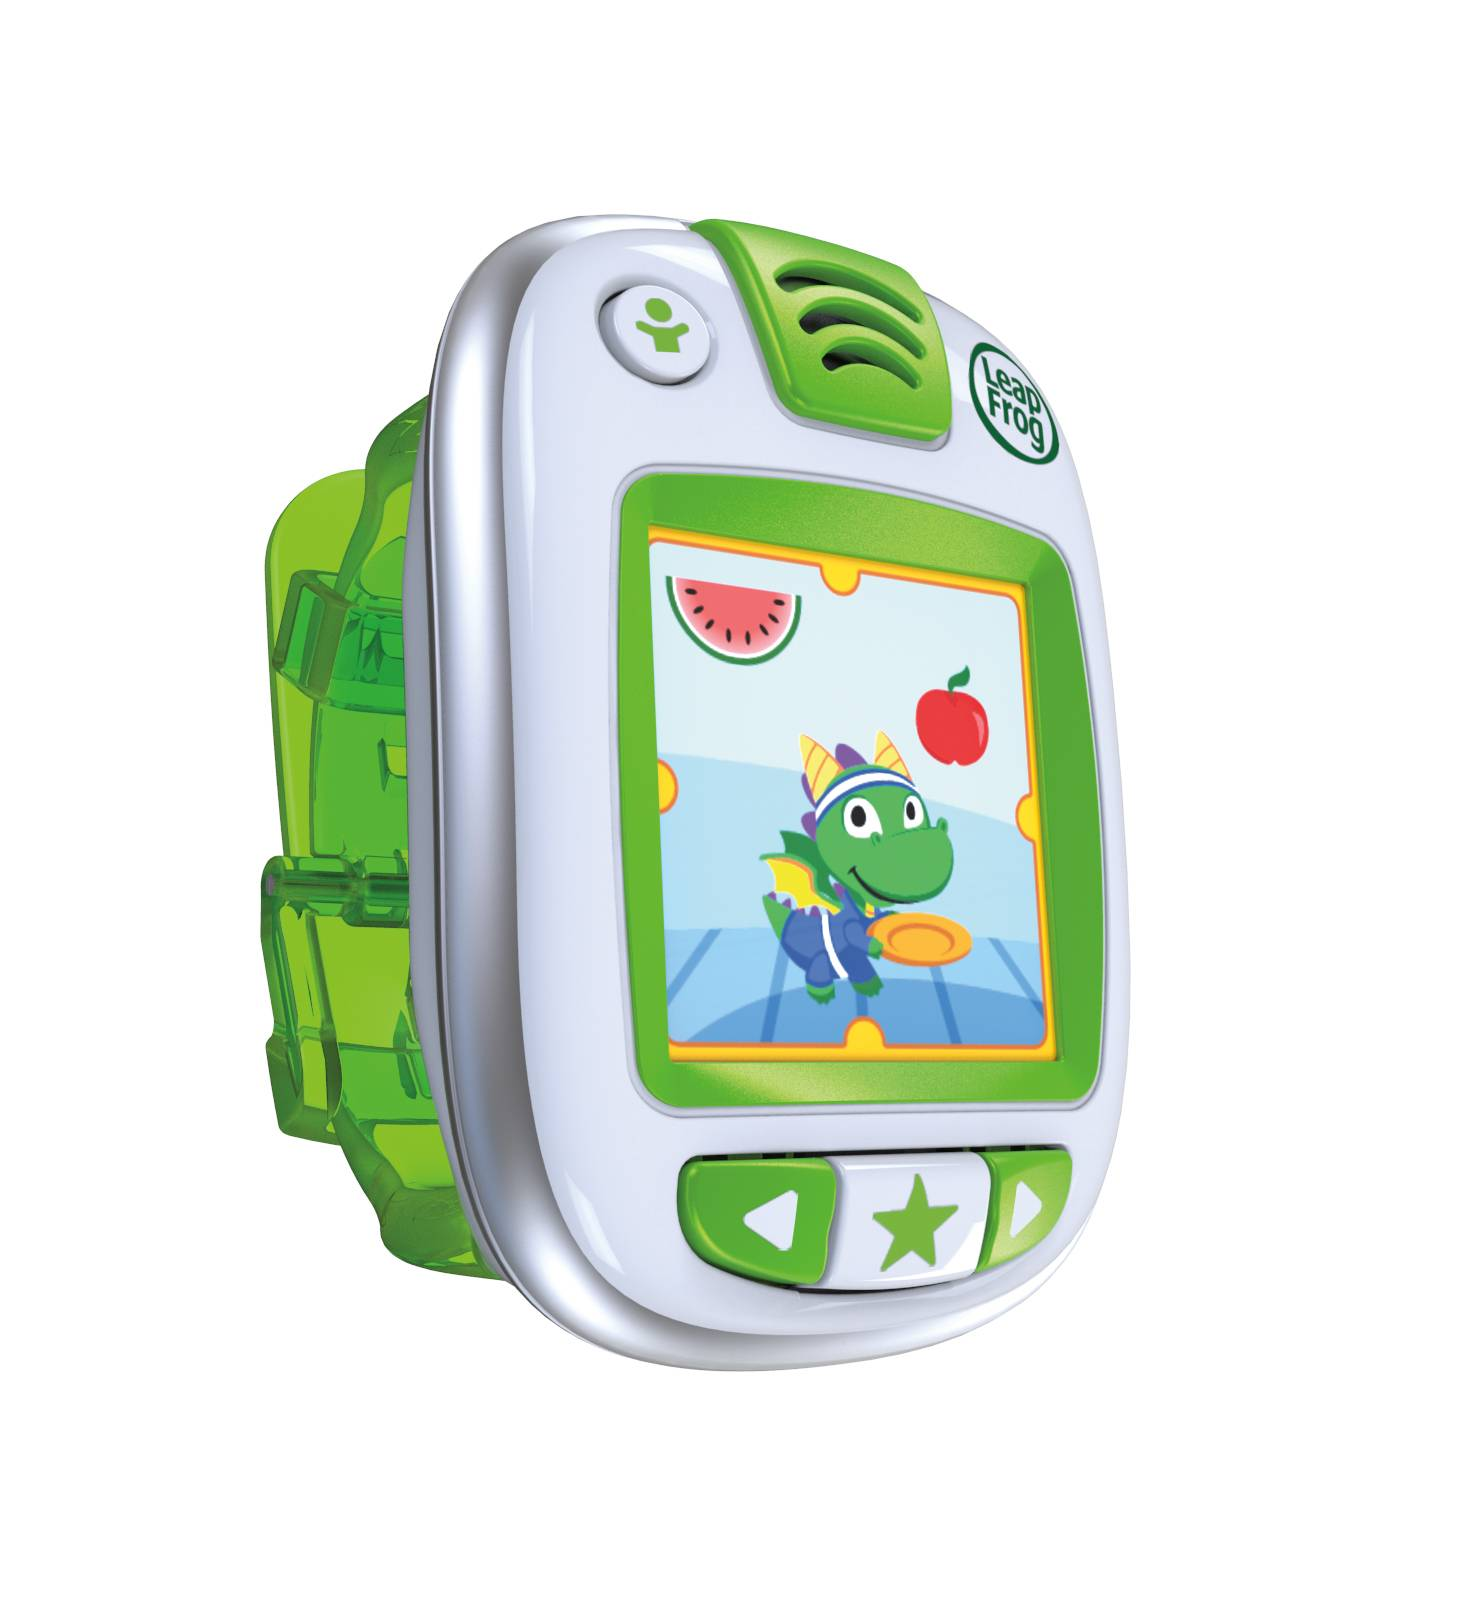 This product image provided by LeapFrog shows the LeapBand.